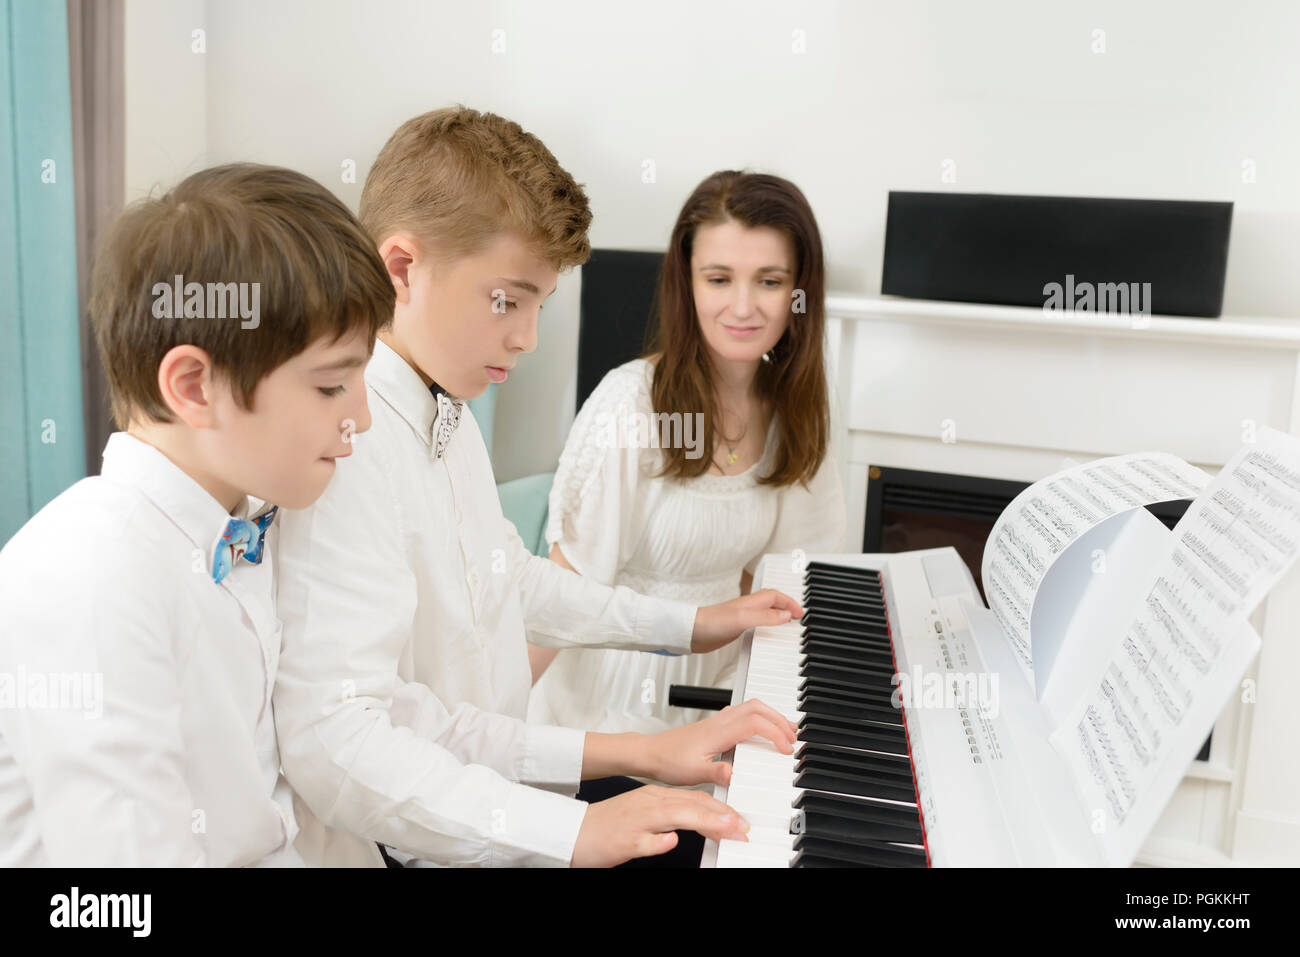 Kids studying at electric piano instrument, playing in tandem, teacher next to them - Stock Image